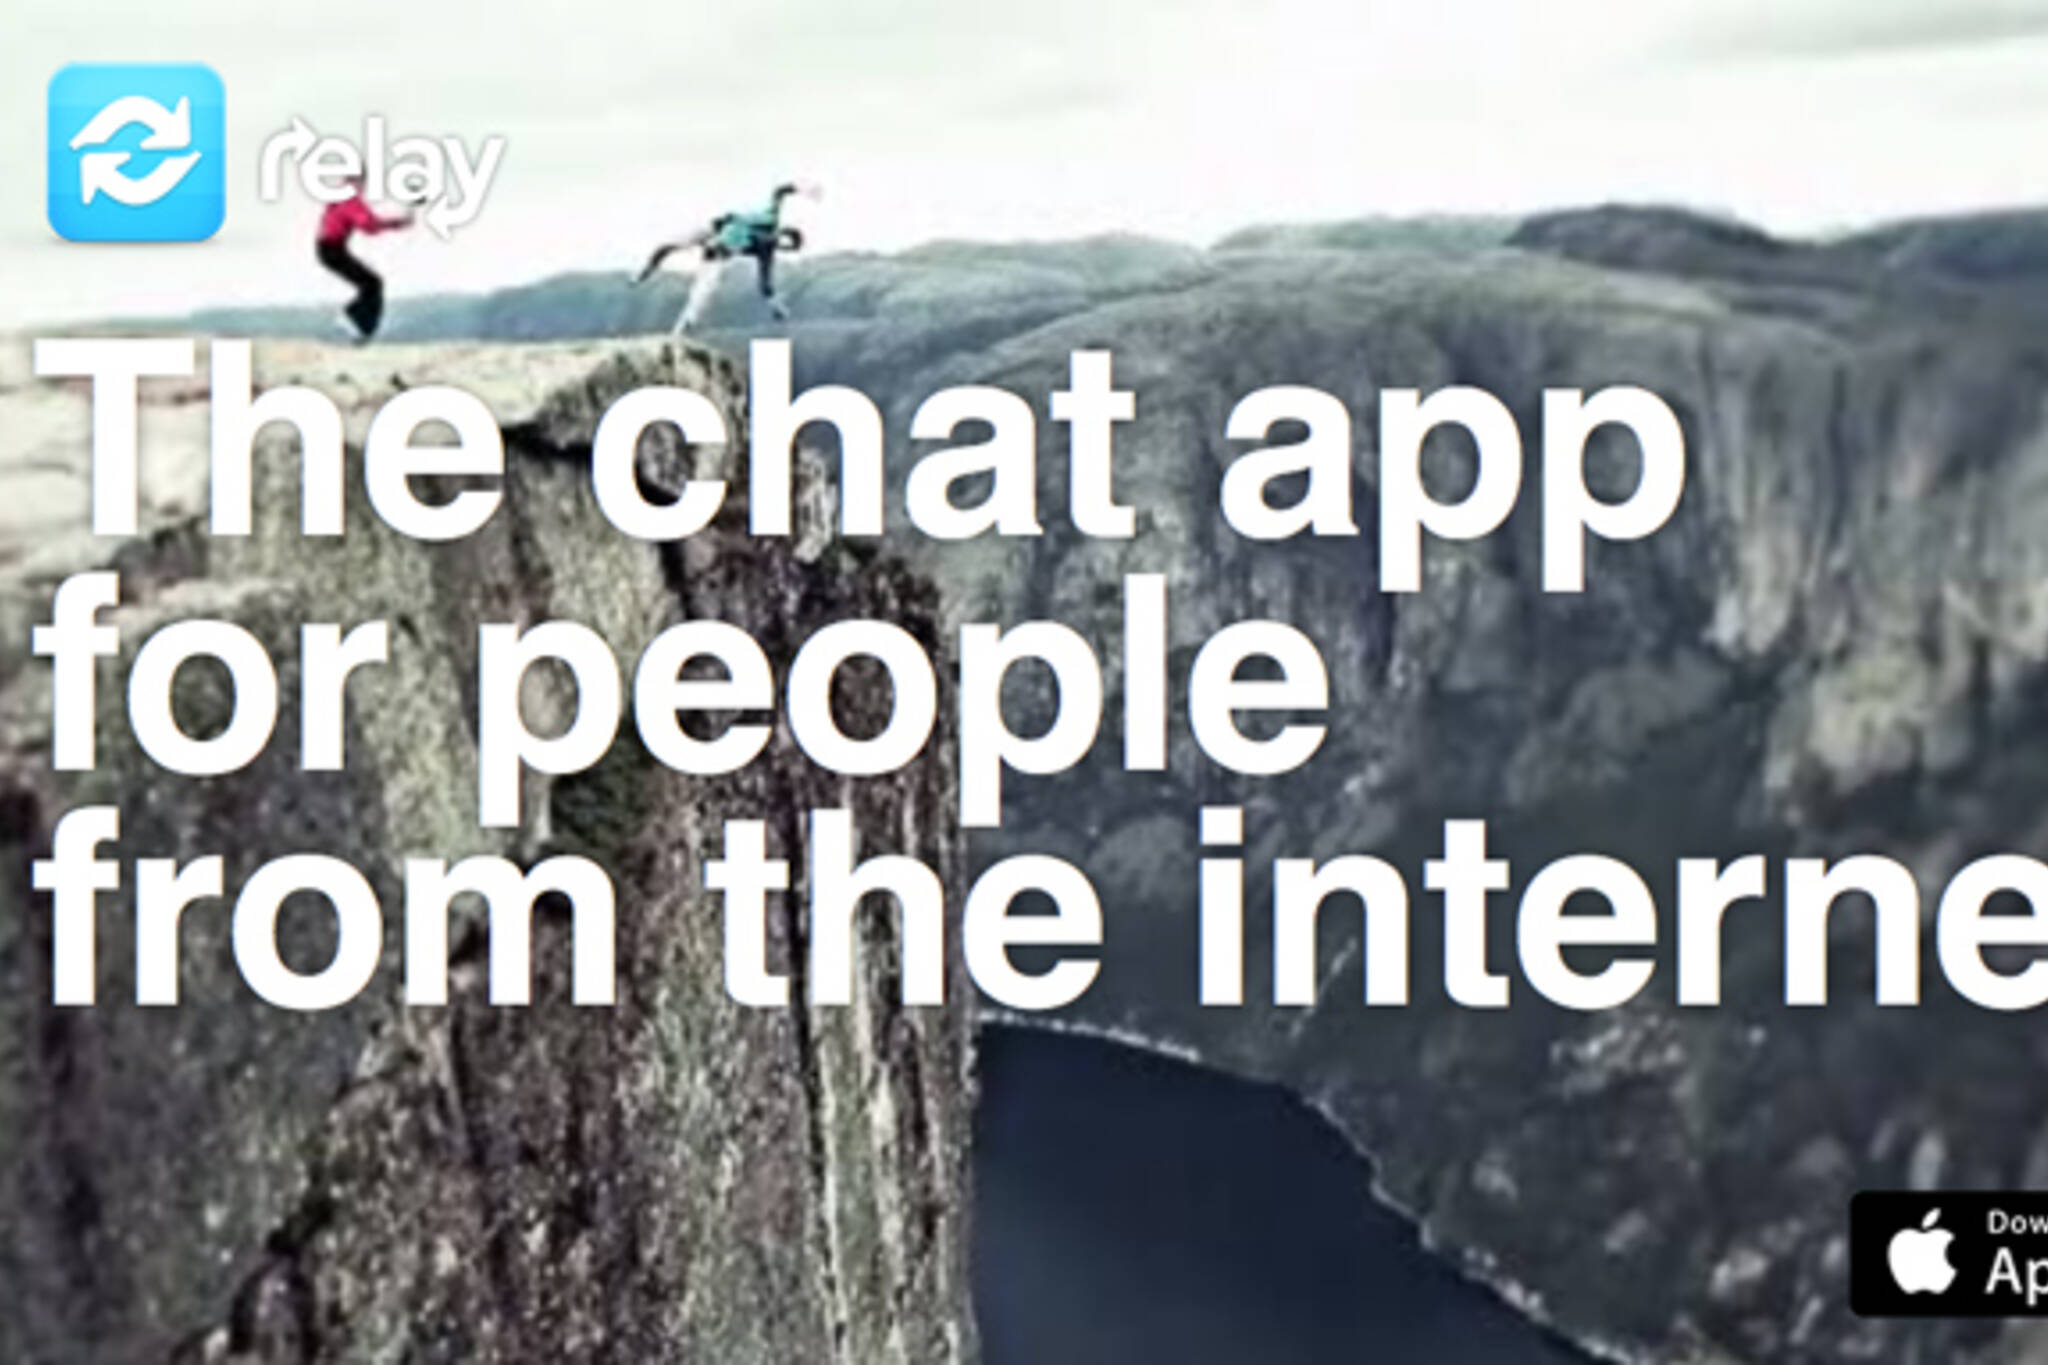 Relay Chat App